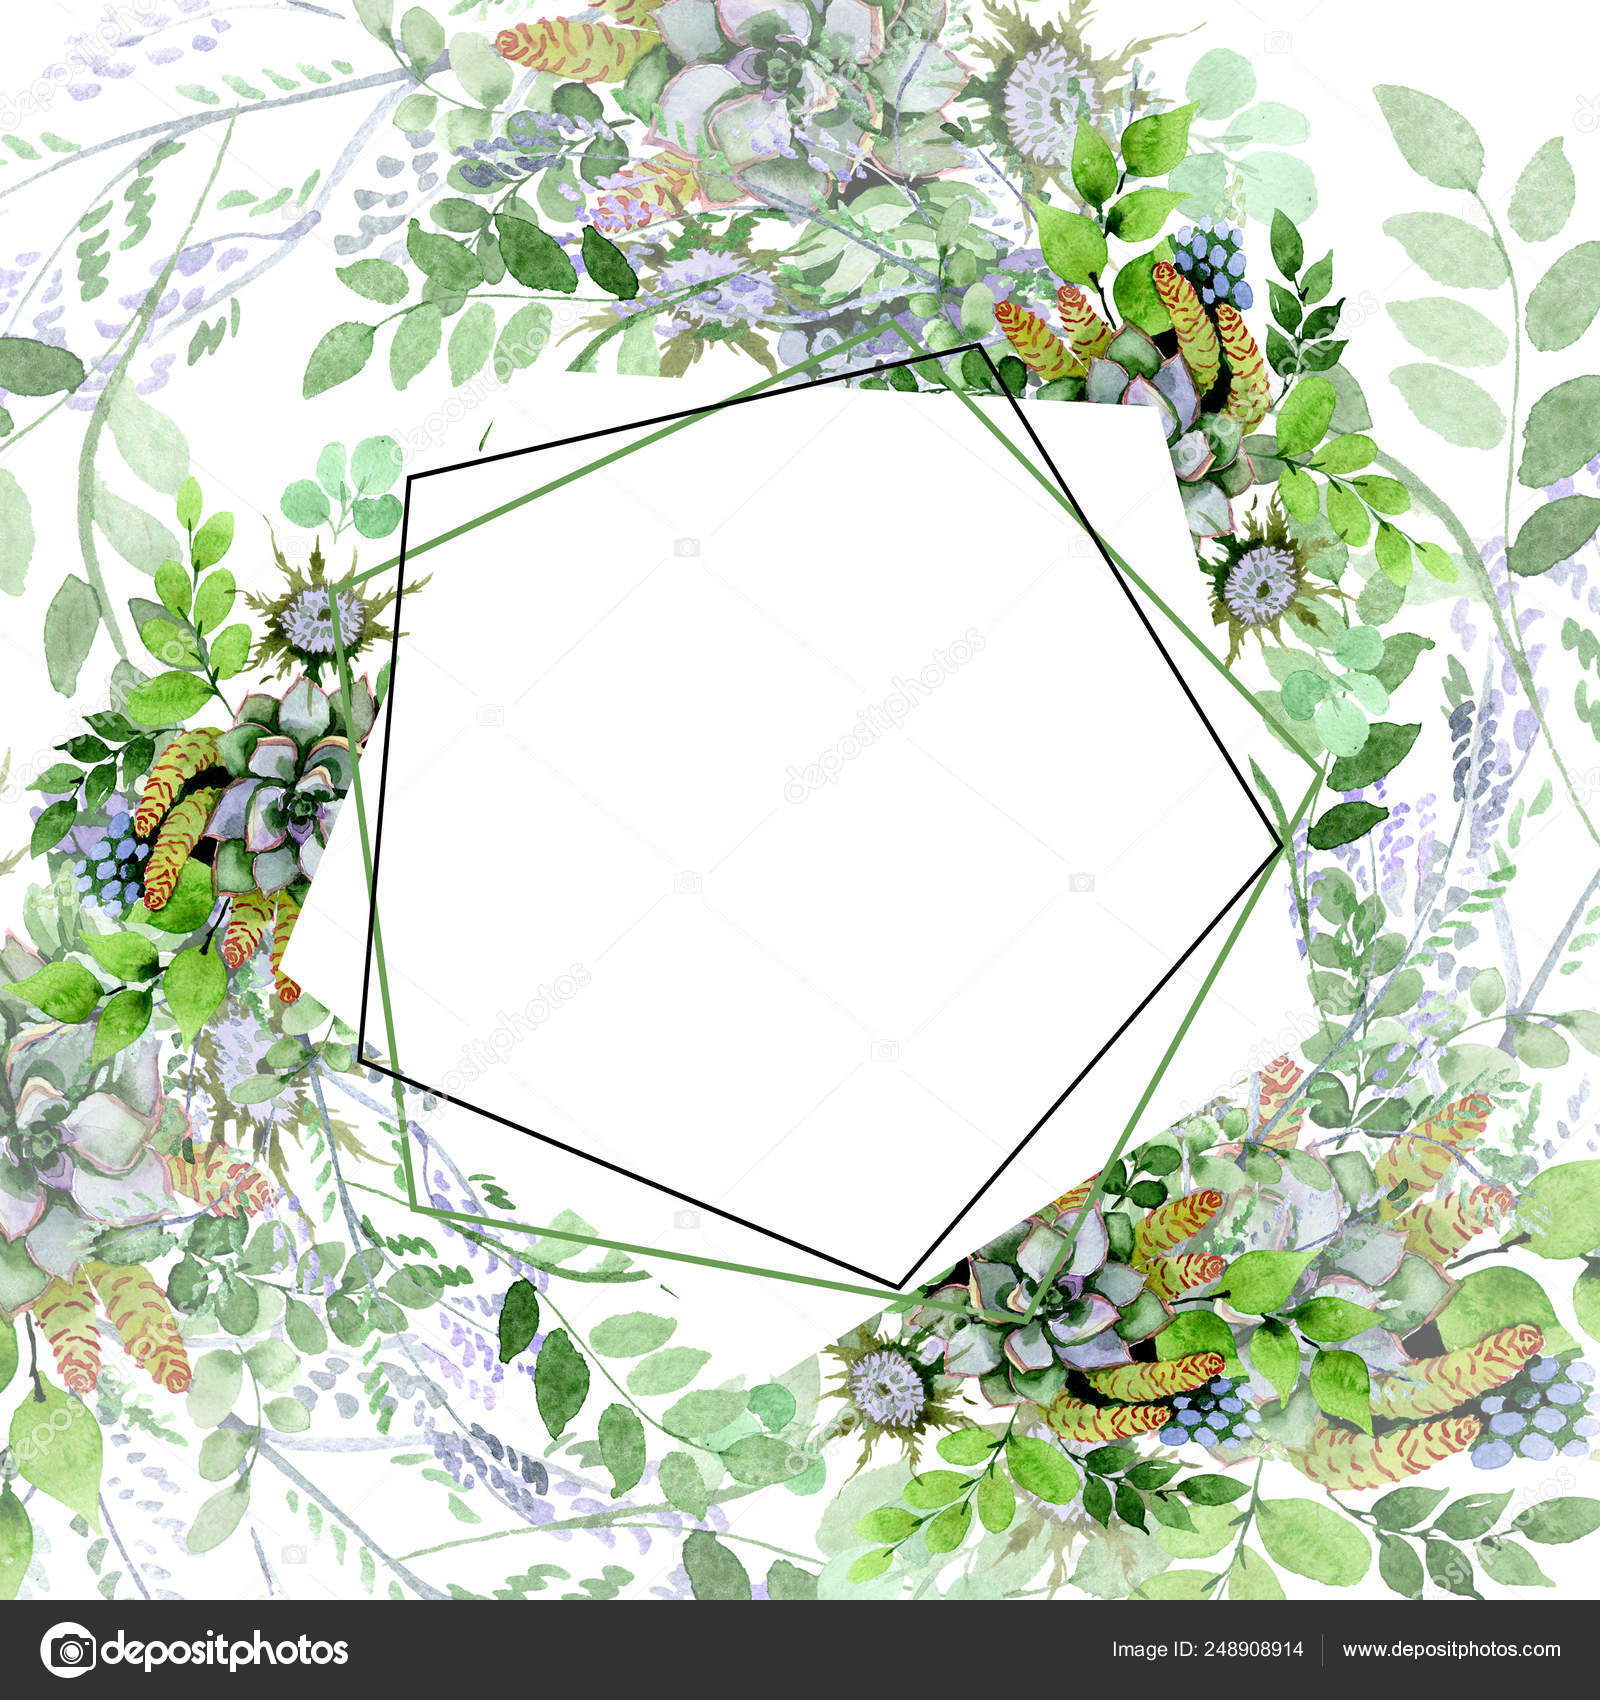 Succulent Bouquet Floral Botanical Flowers Watercolor Background Illustration Set Frame Border Ornament Square Stock Photo Image By C Mystocks 248908914